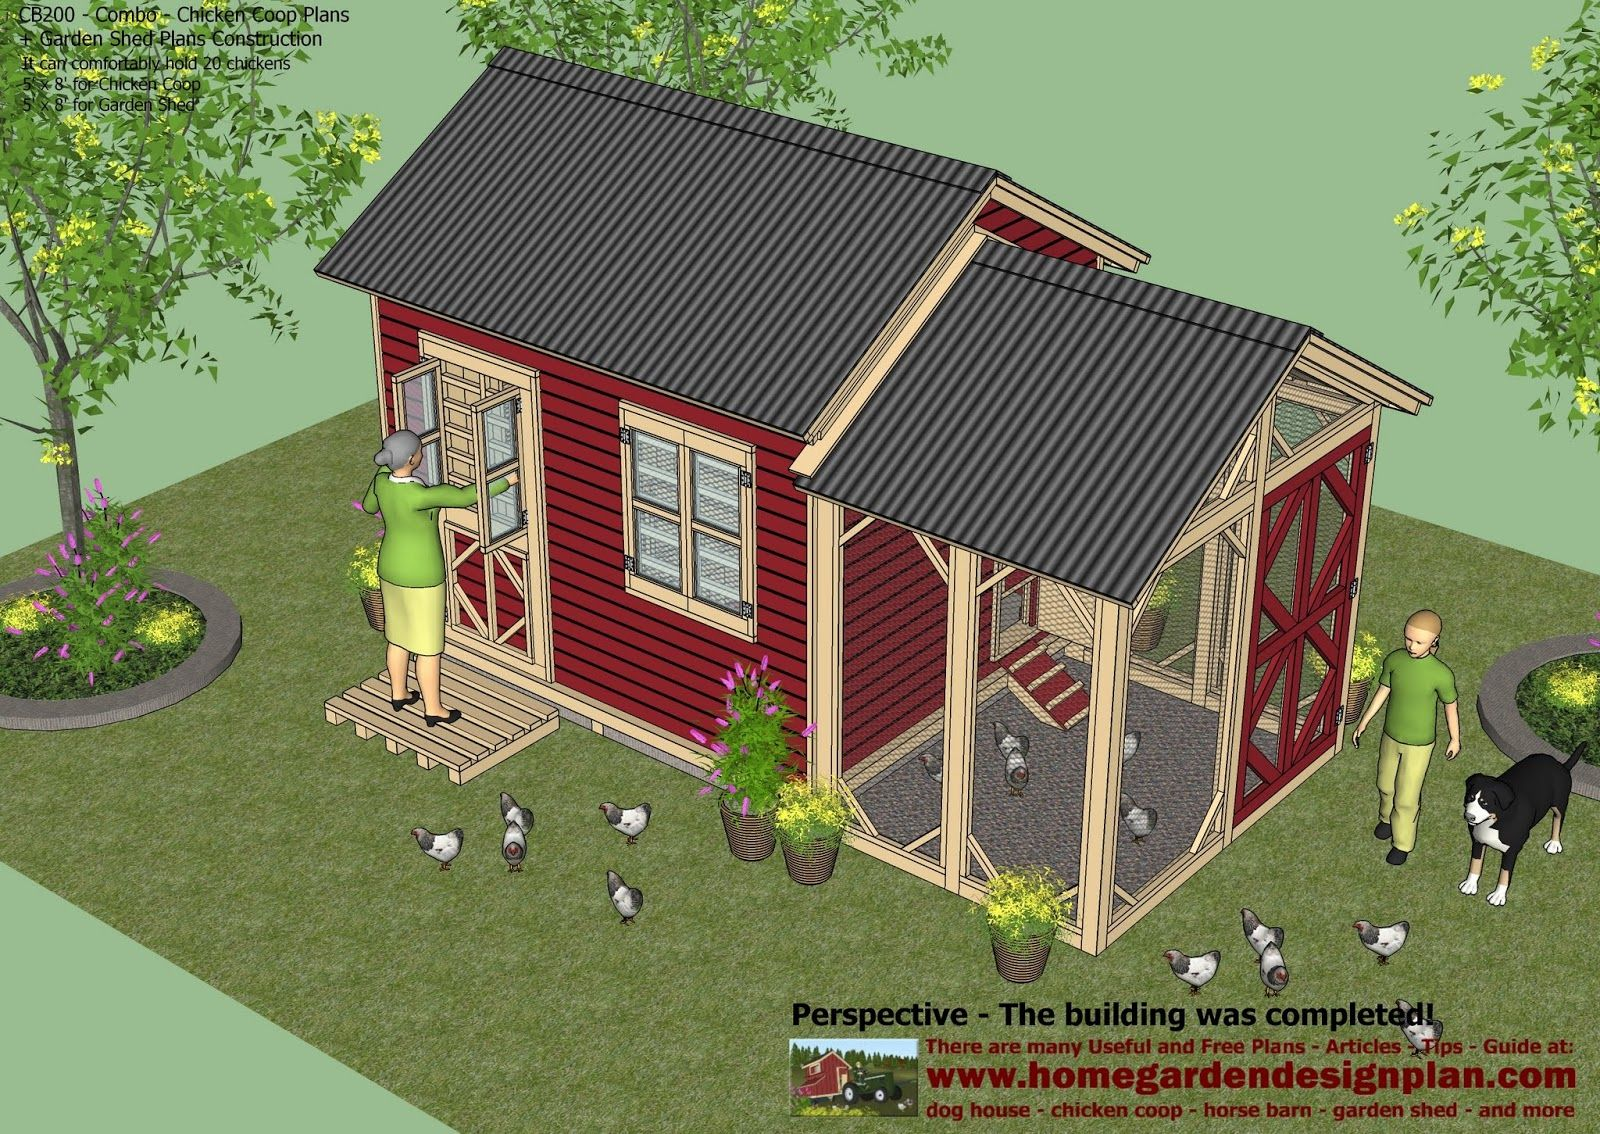 greenhouse chicken coop garden shed combination chicken run 15 0 building chicken run - Chicken Co Op Plans And Greenhouse